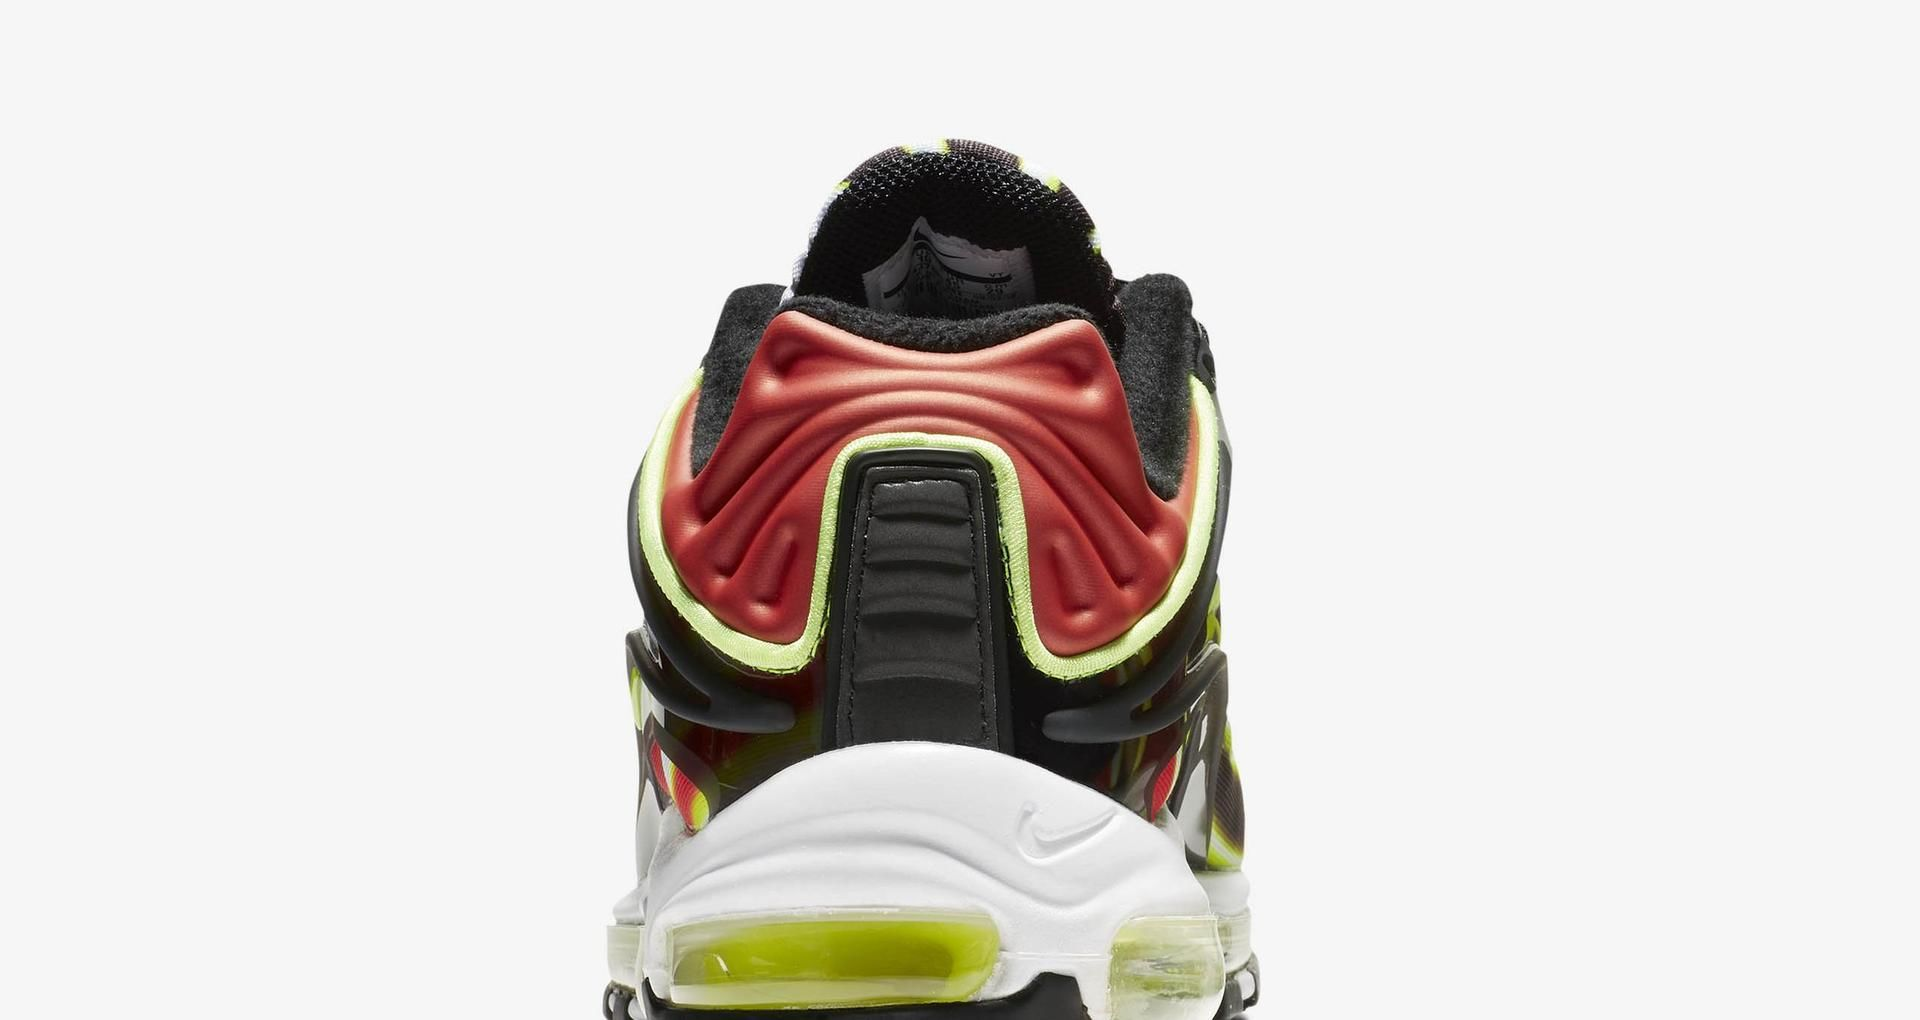 b7d3210cab Nike Air Max Deluxe 'Black & Habanero Red & White & Volt' Release Date